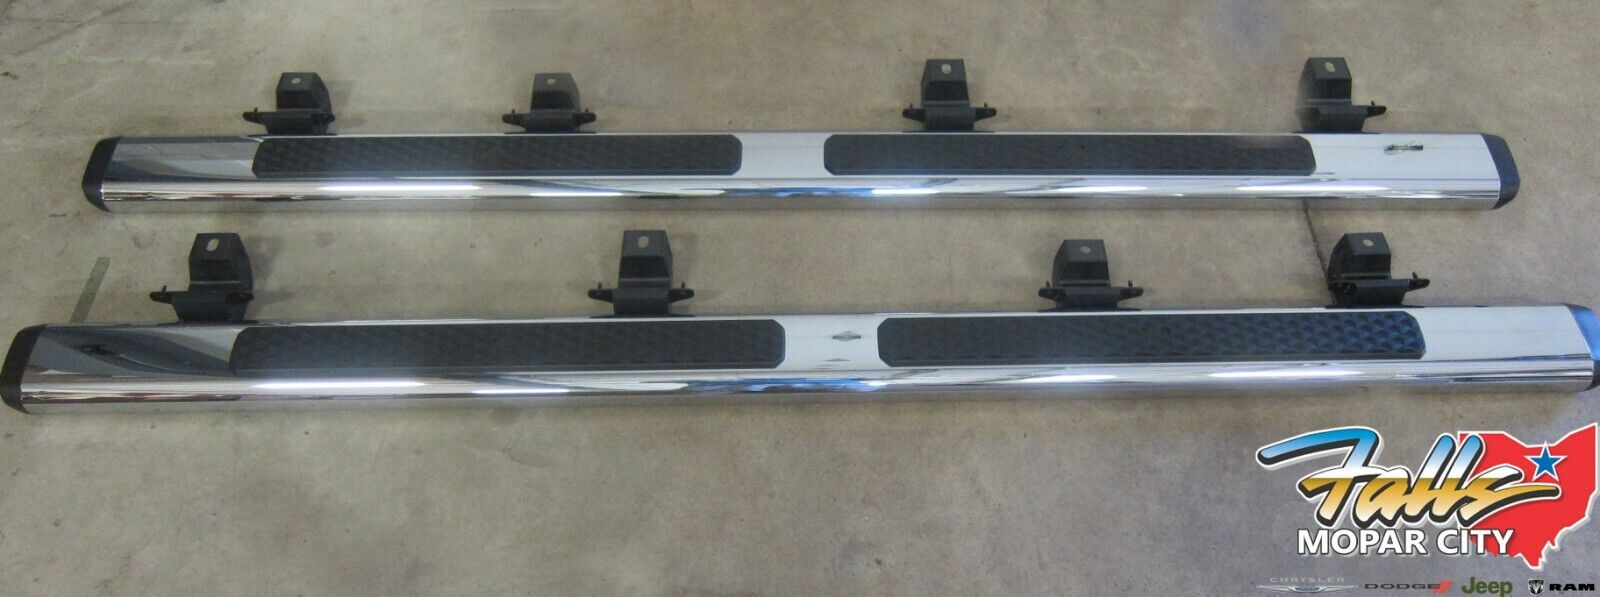 2020 Jeep Gladiator Chrome Tubular Side Steps New Mopar Oem Ebay